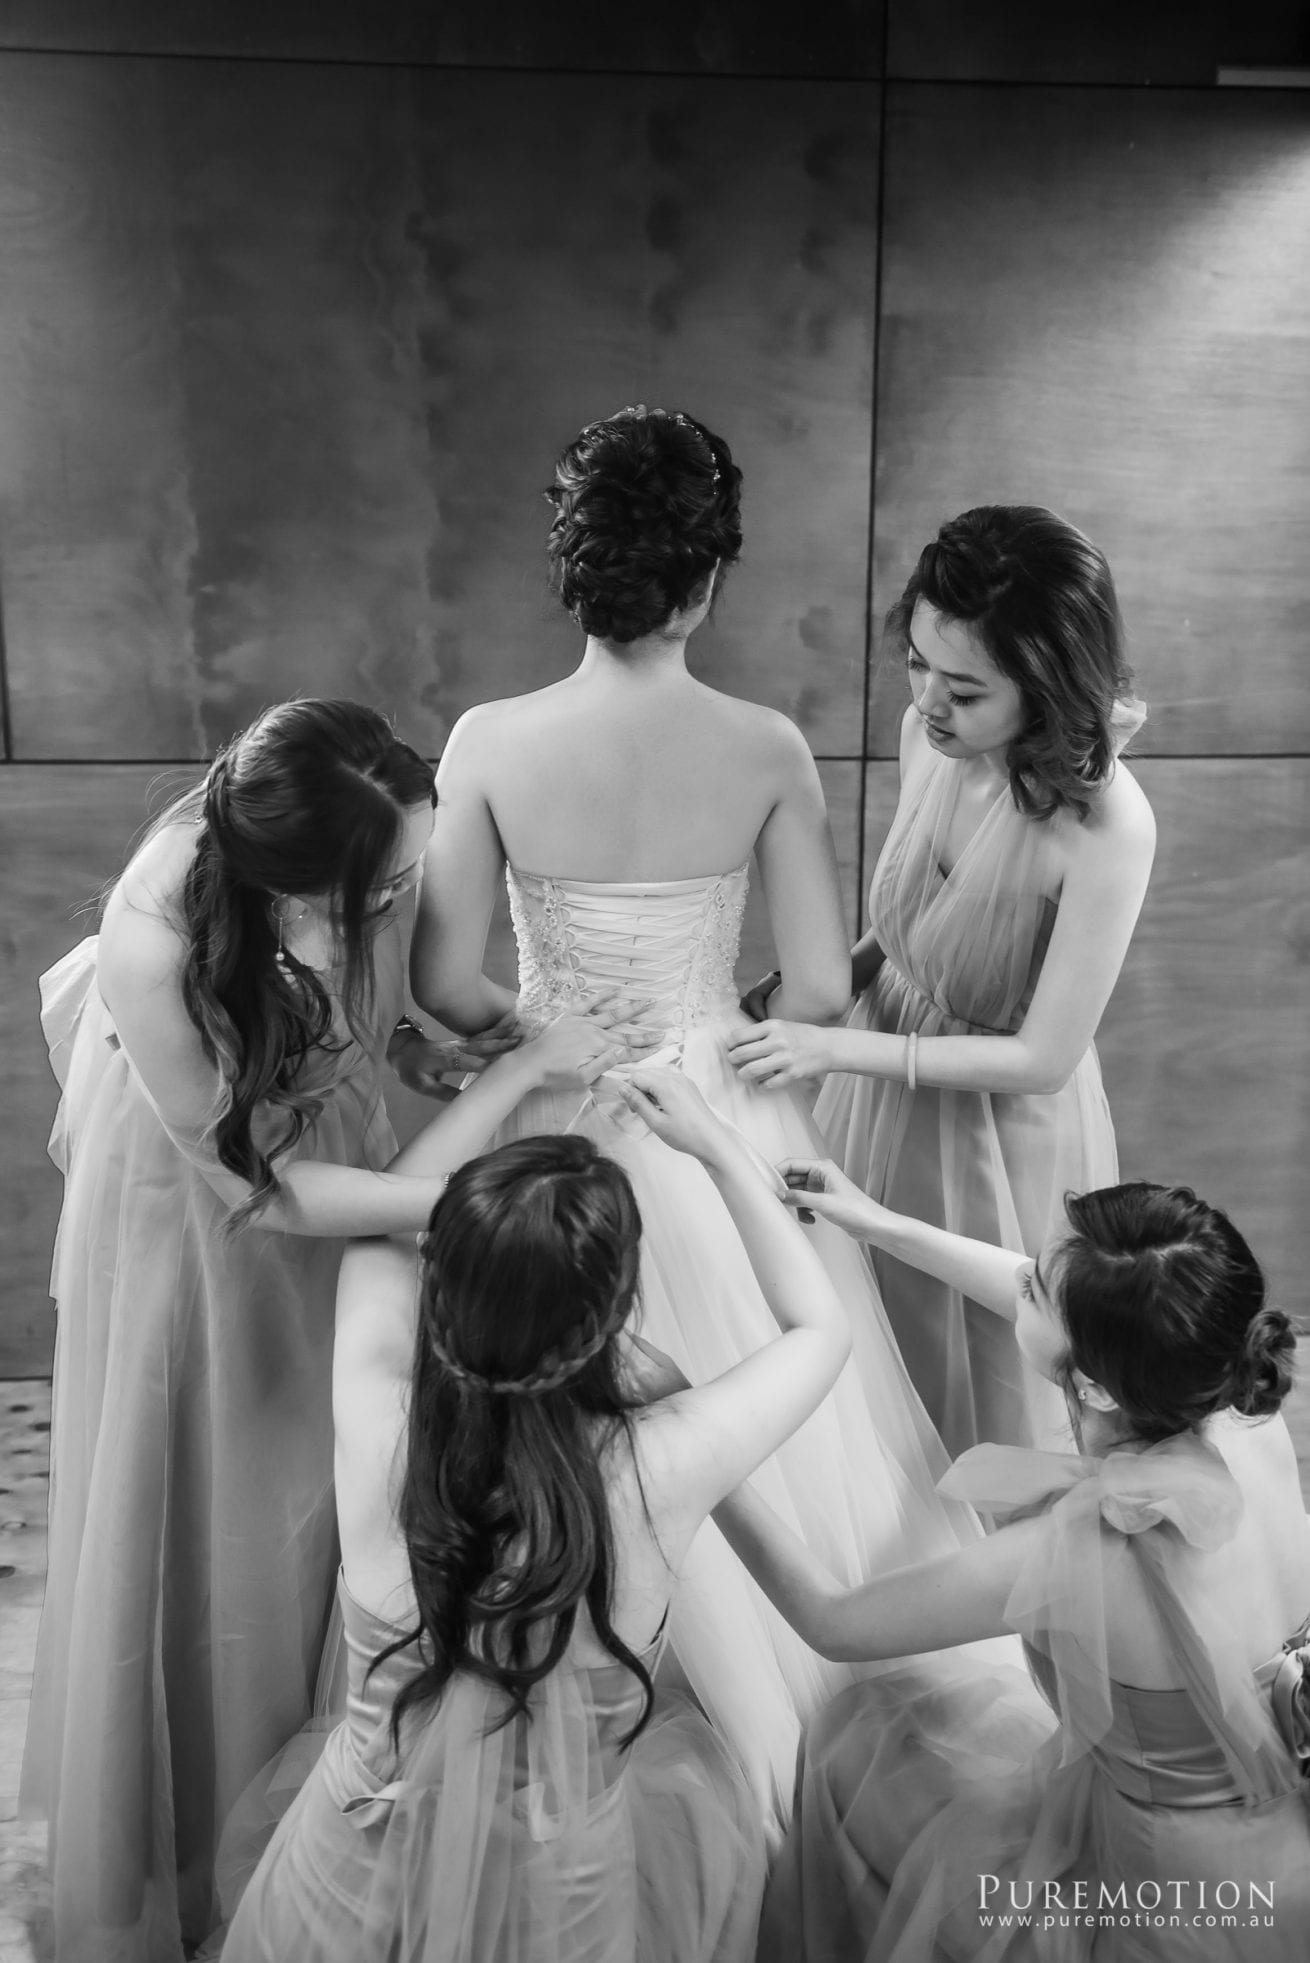 180830 Puremotion Wedding Photography Kooroomba Lavender Alex Huang NoraOscar-0026